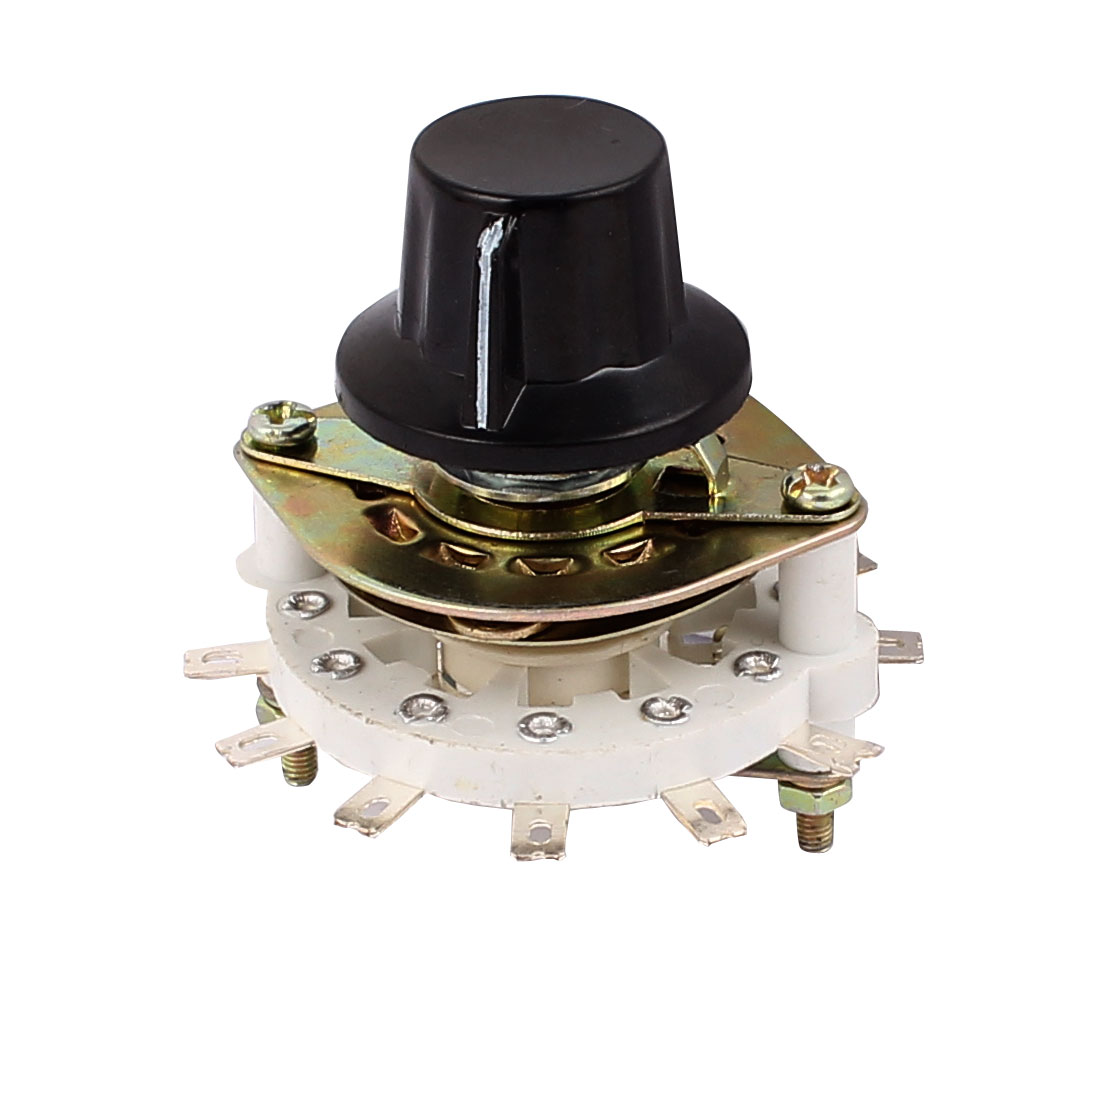 KCT 2 Pole 5 Throw 6mm Shaft Band Channel Rotary Switch Selector w Cap